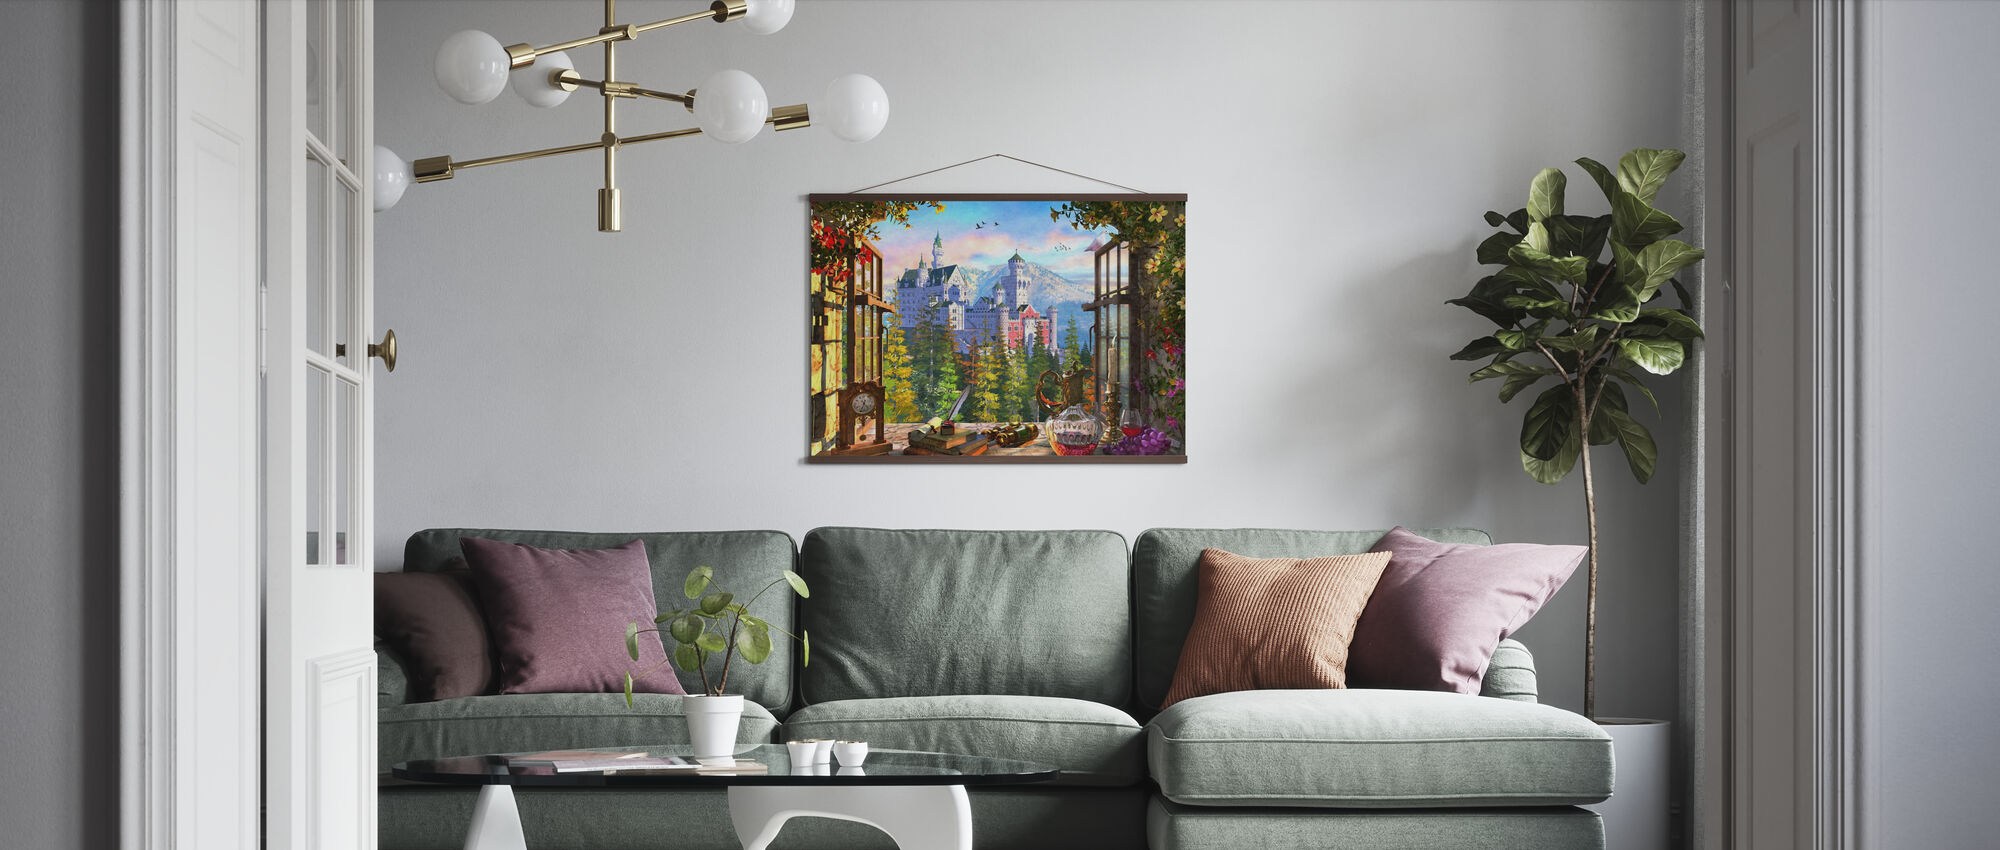 Mountain Castle through Window - Poster - Living Room